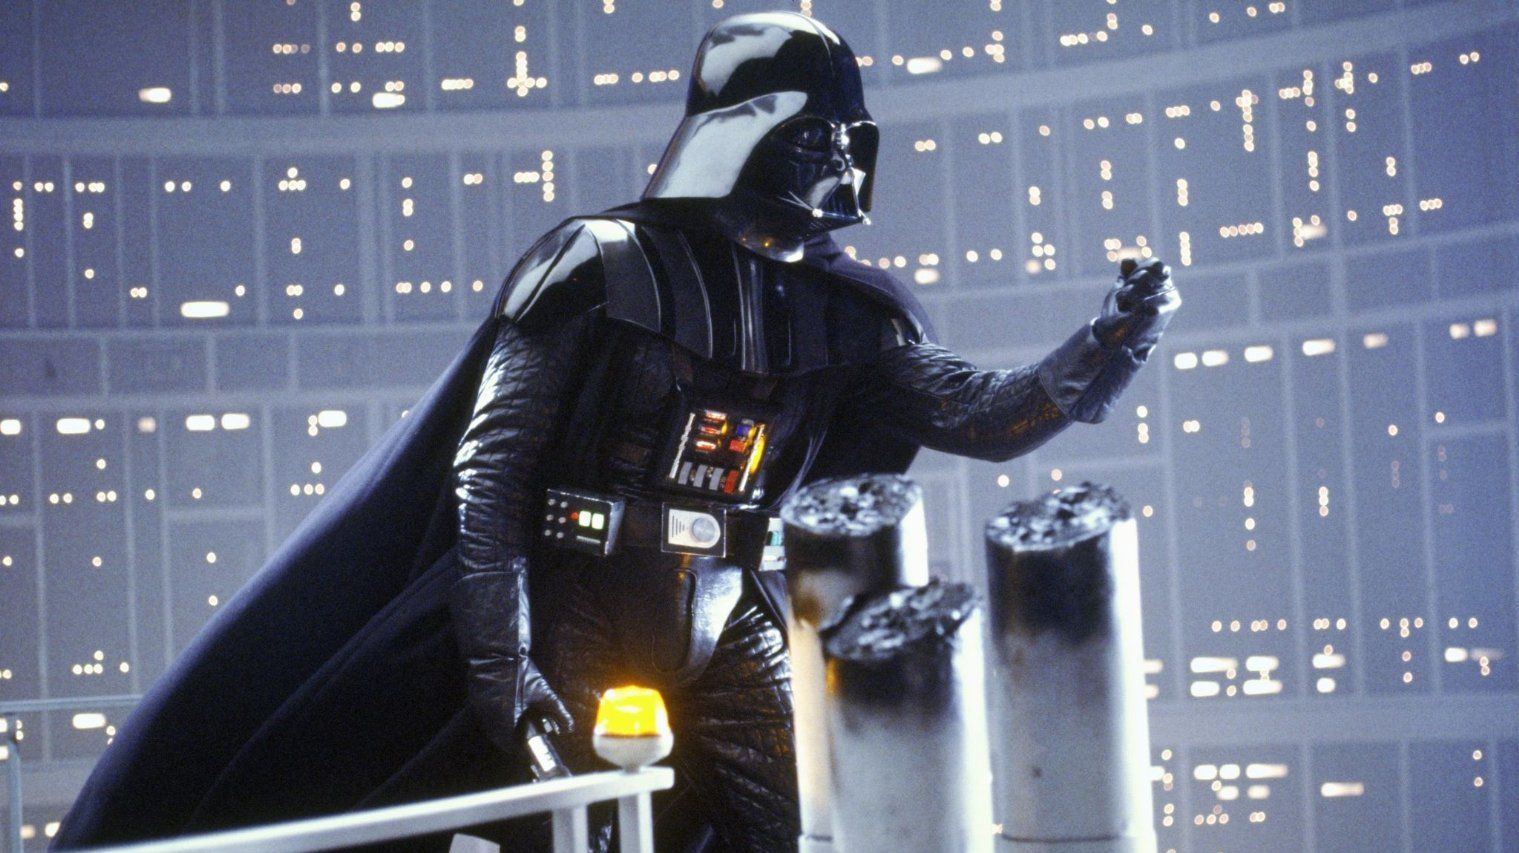 5 Axed Ideas From the Original Star Wars: The Empire Strikes Back Script